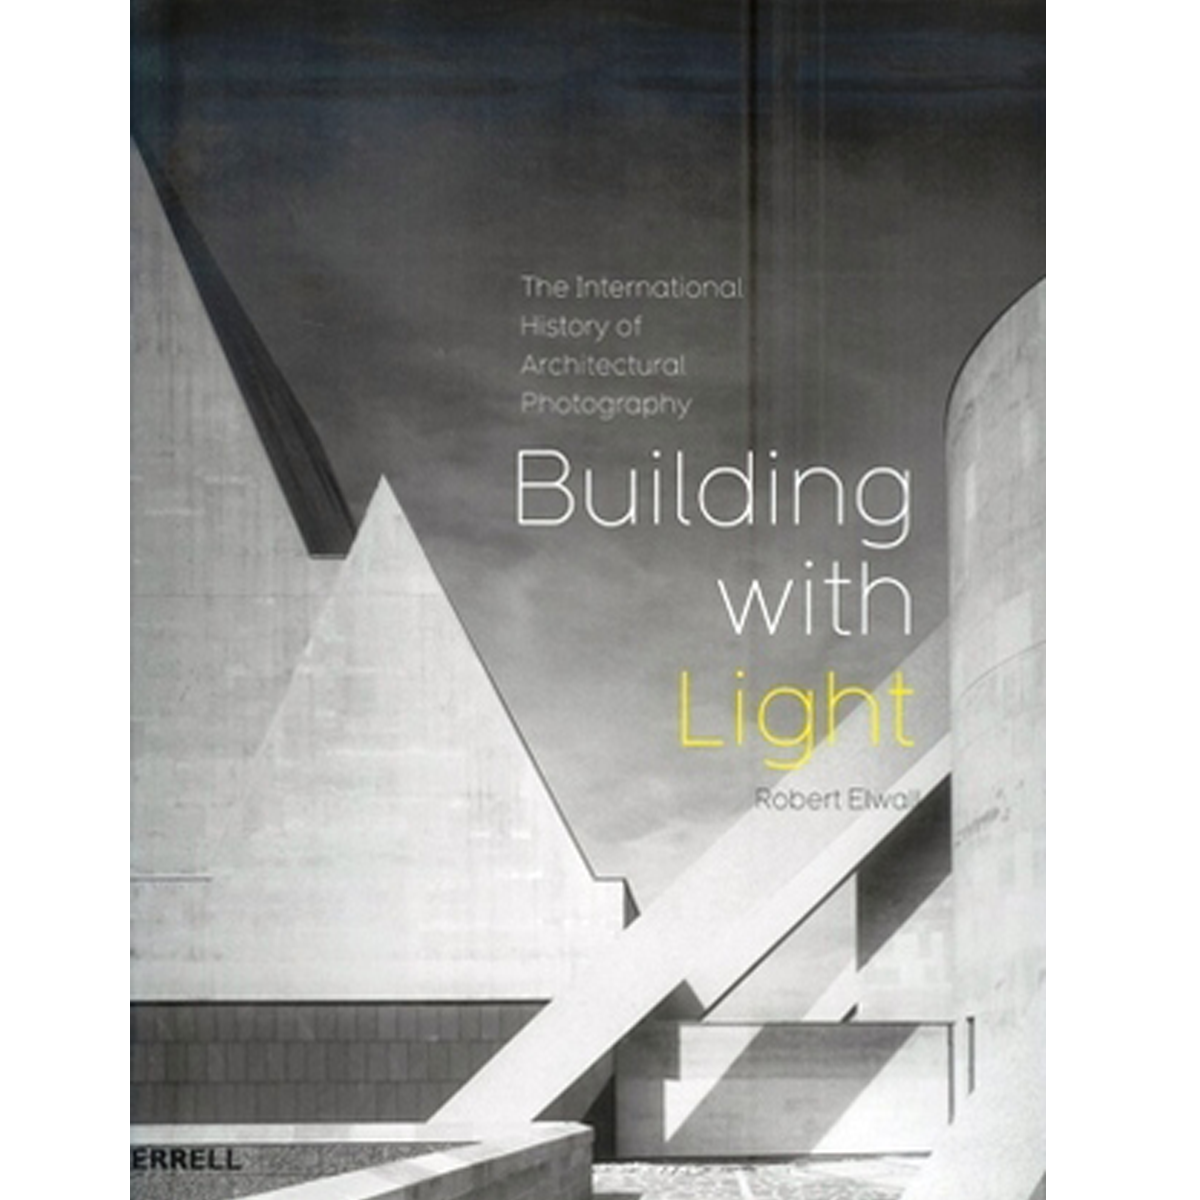 Building with light